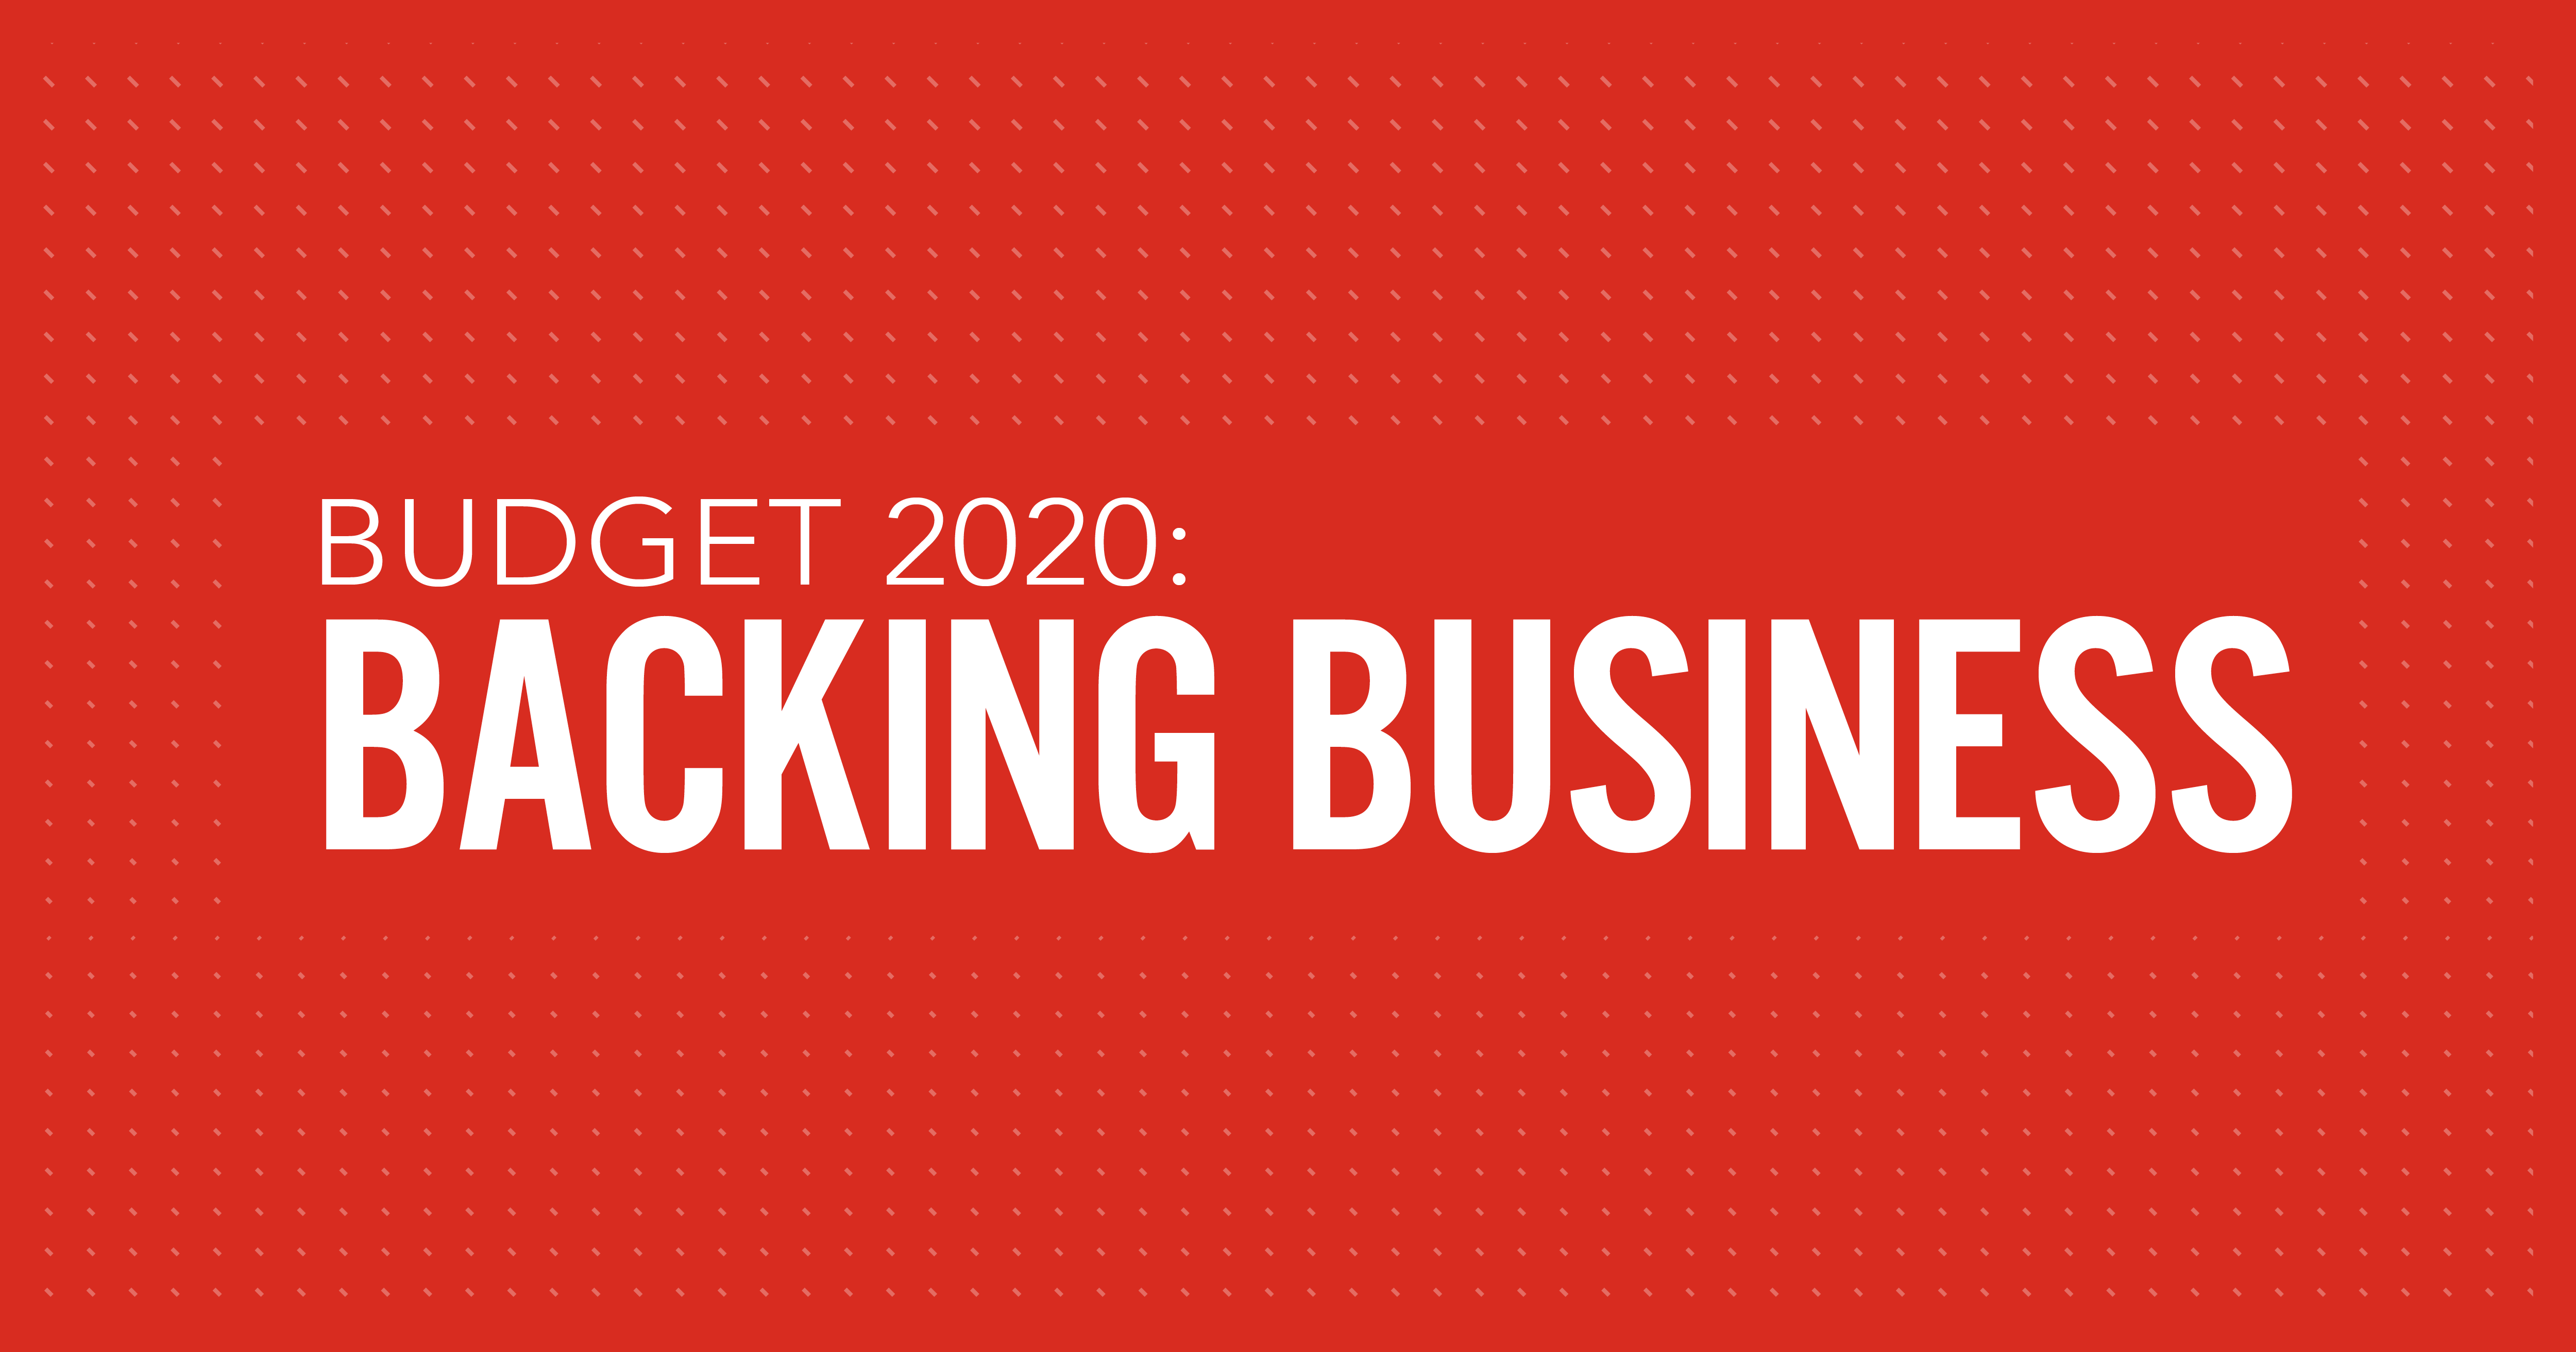 How Budget 2020 is backing businesses thumbnail